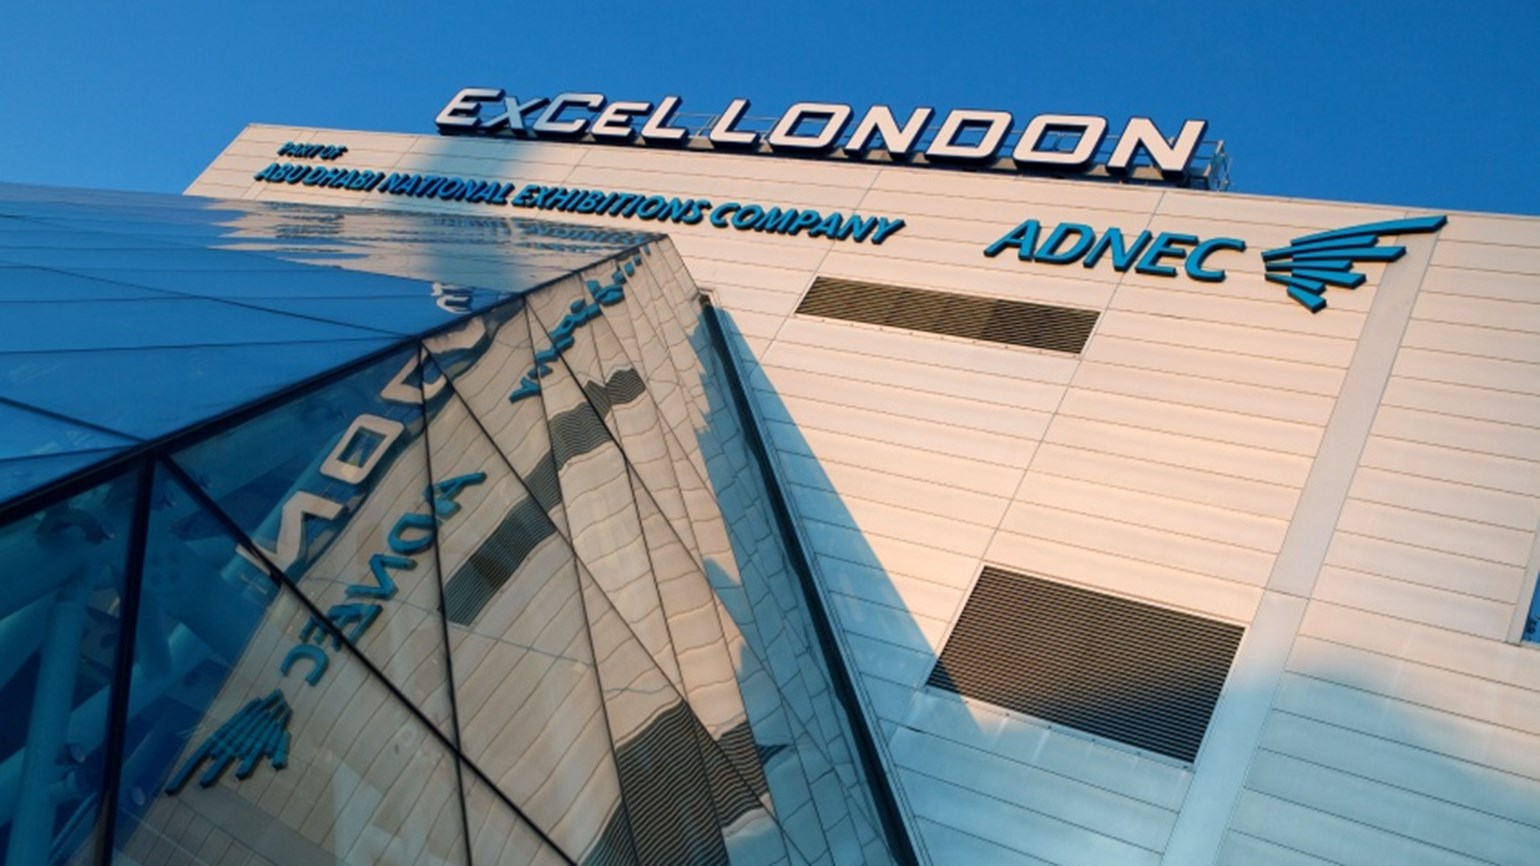 Exterior of Excel London